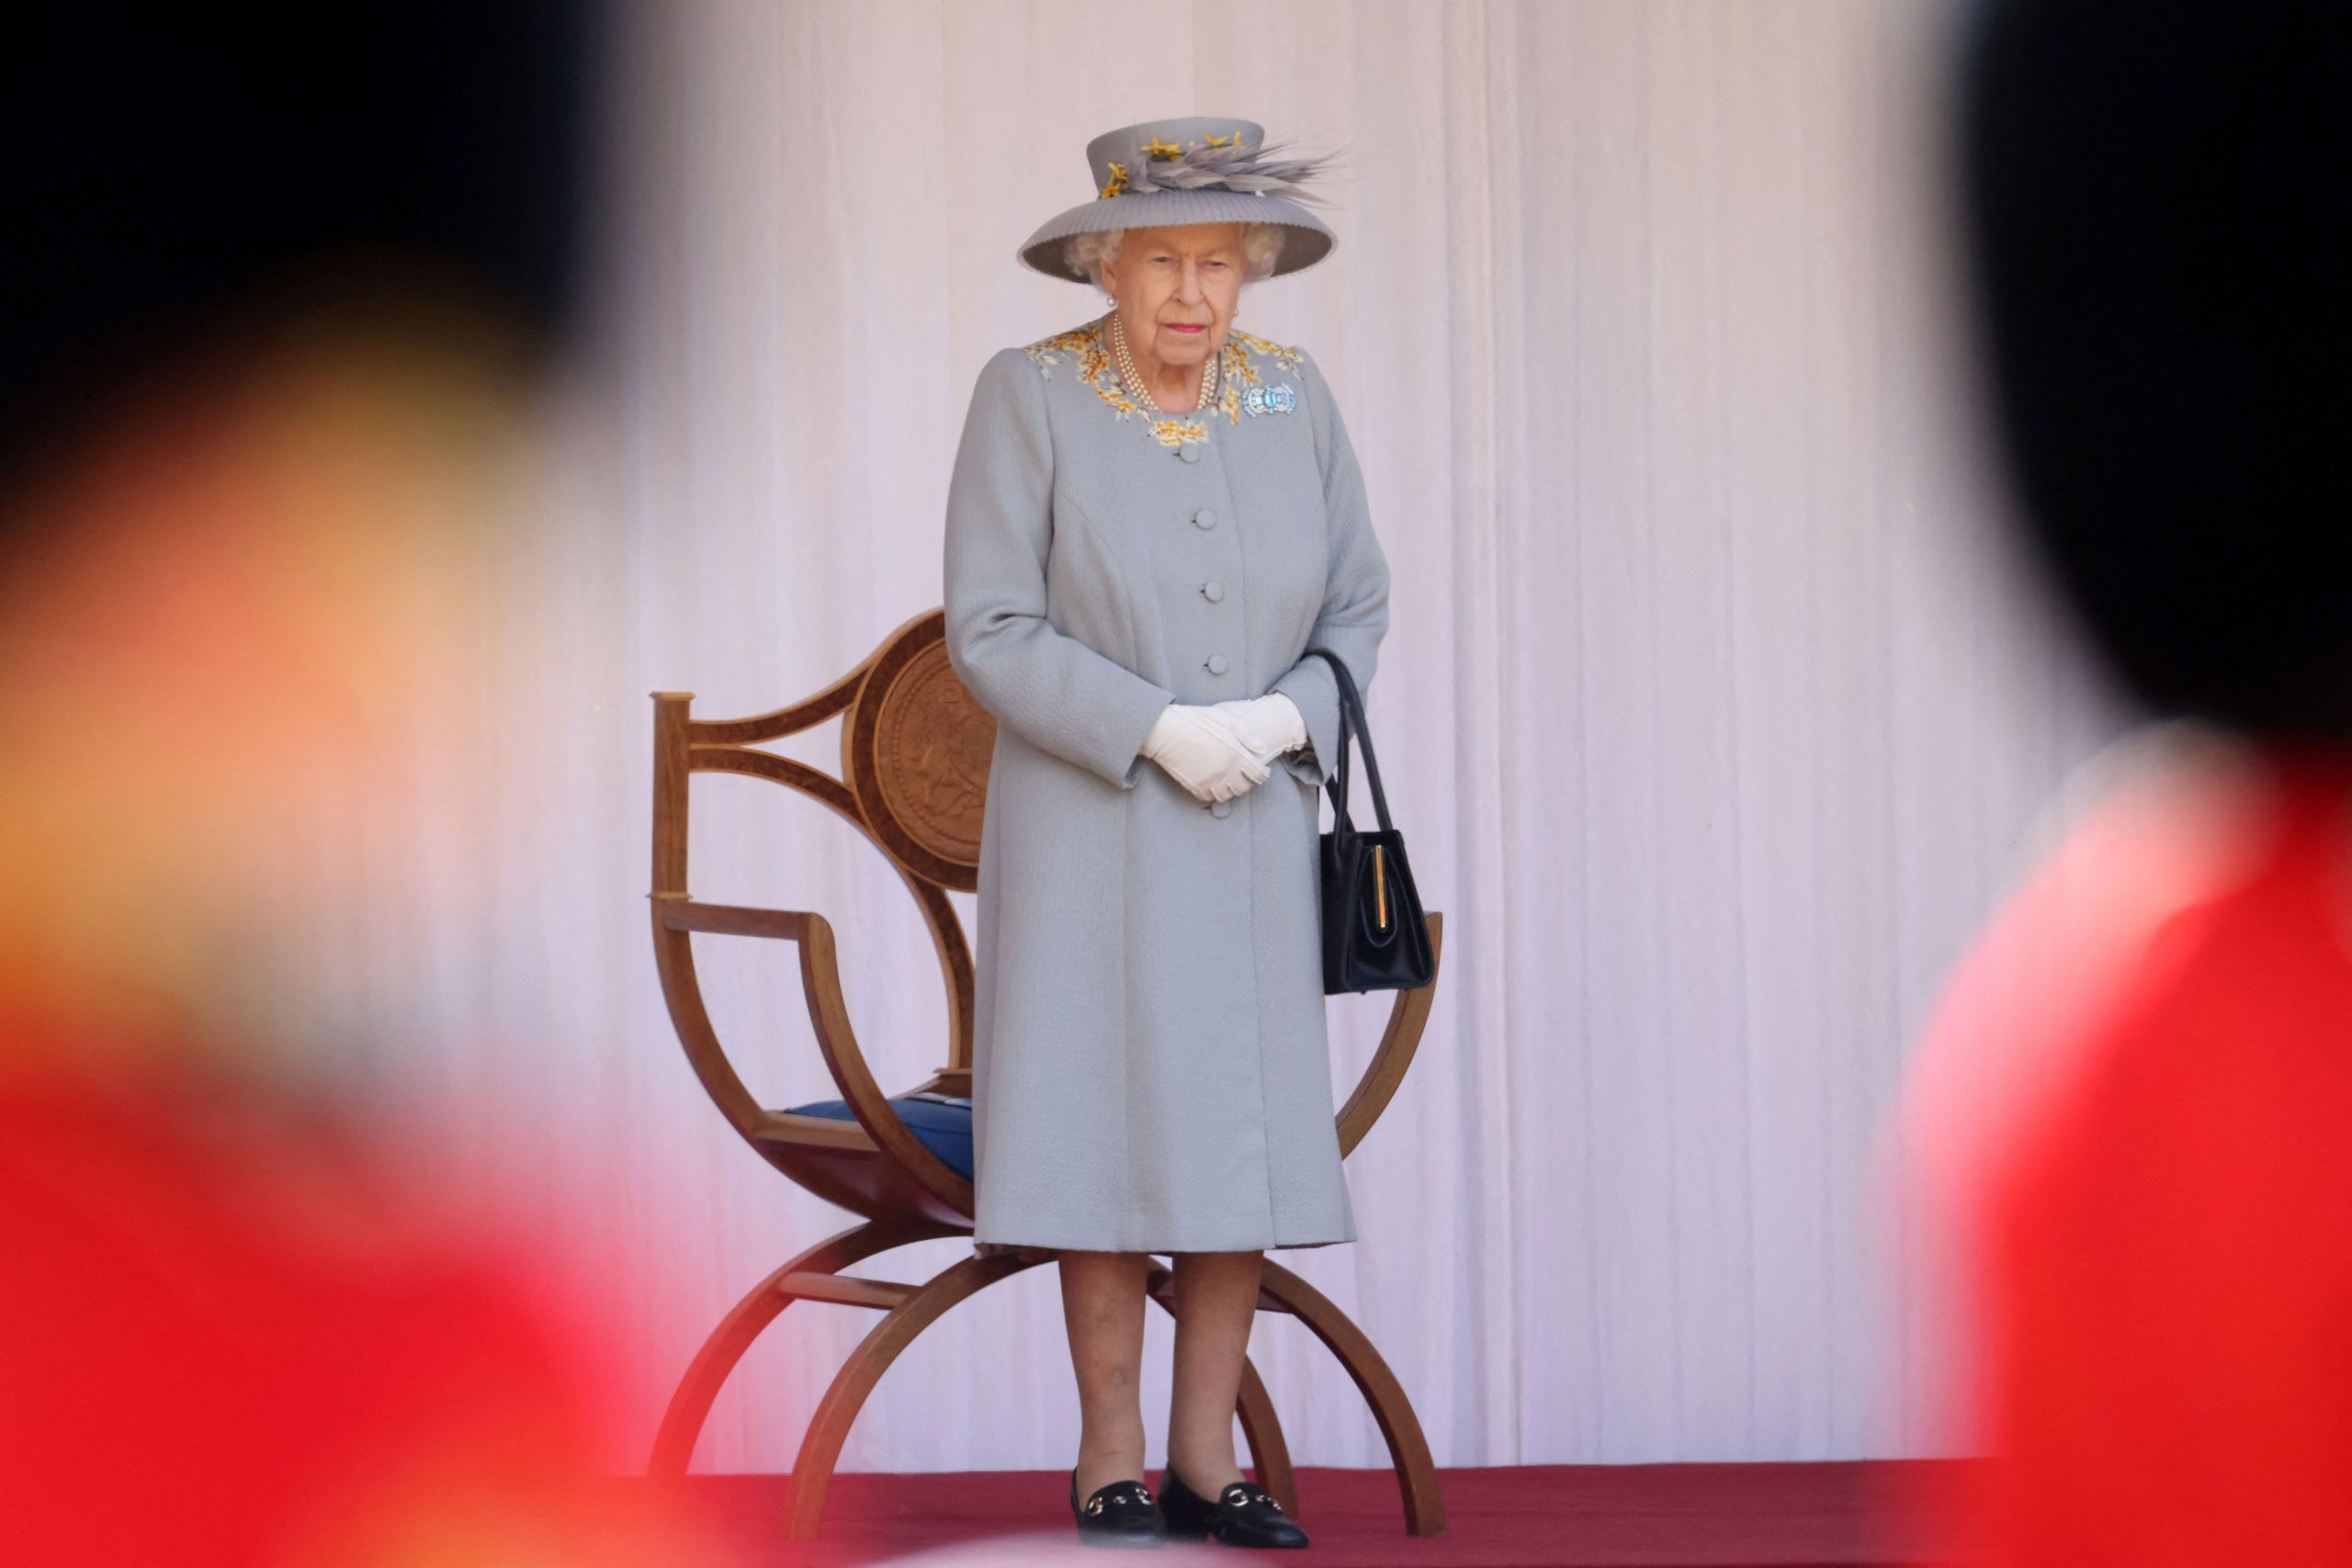 Queen Elizabeth II watches a military ceremony at Windsor Castle in England on June 12.